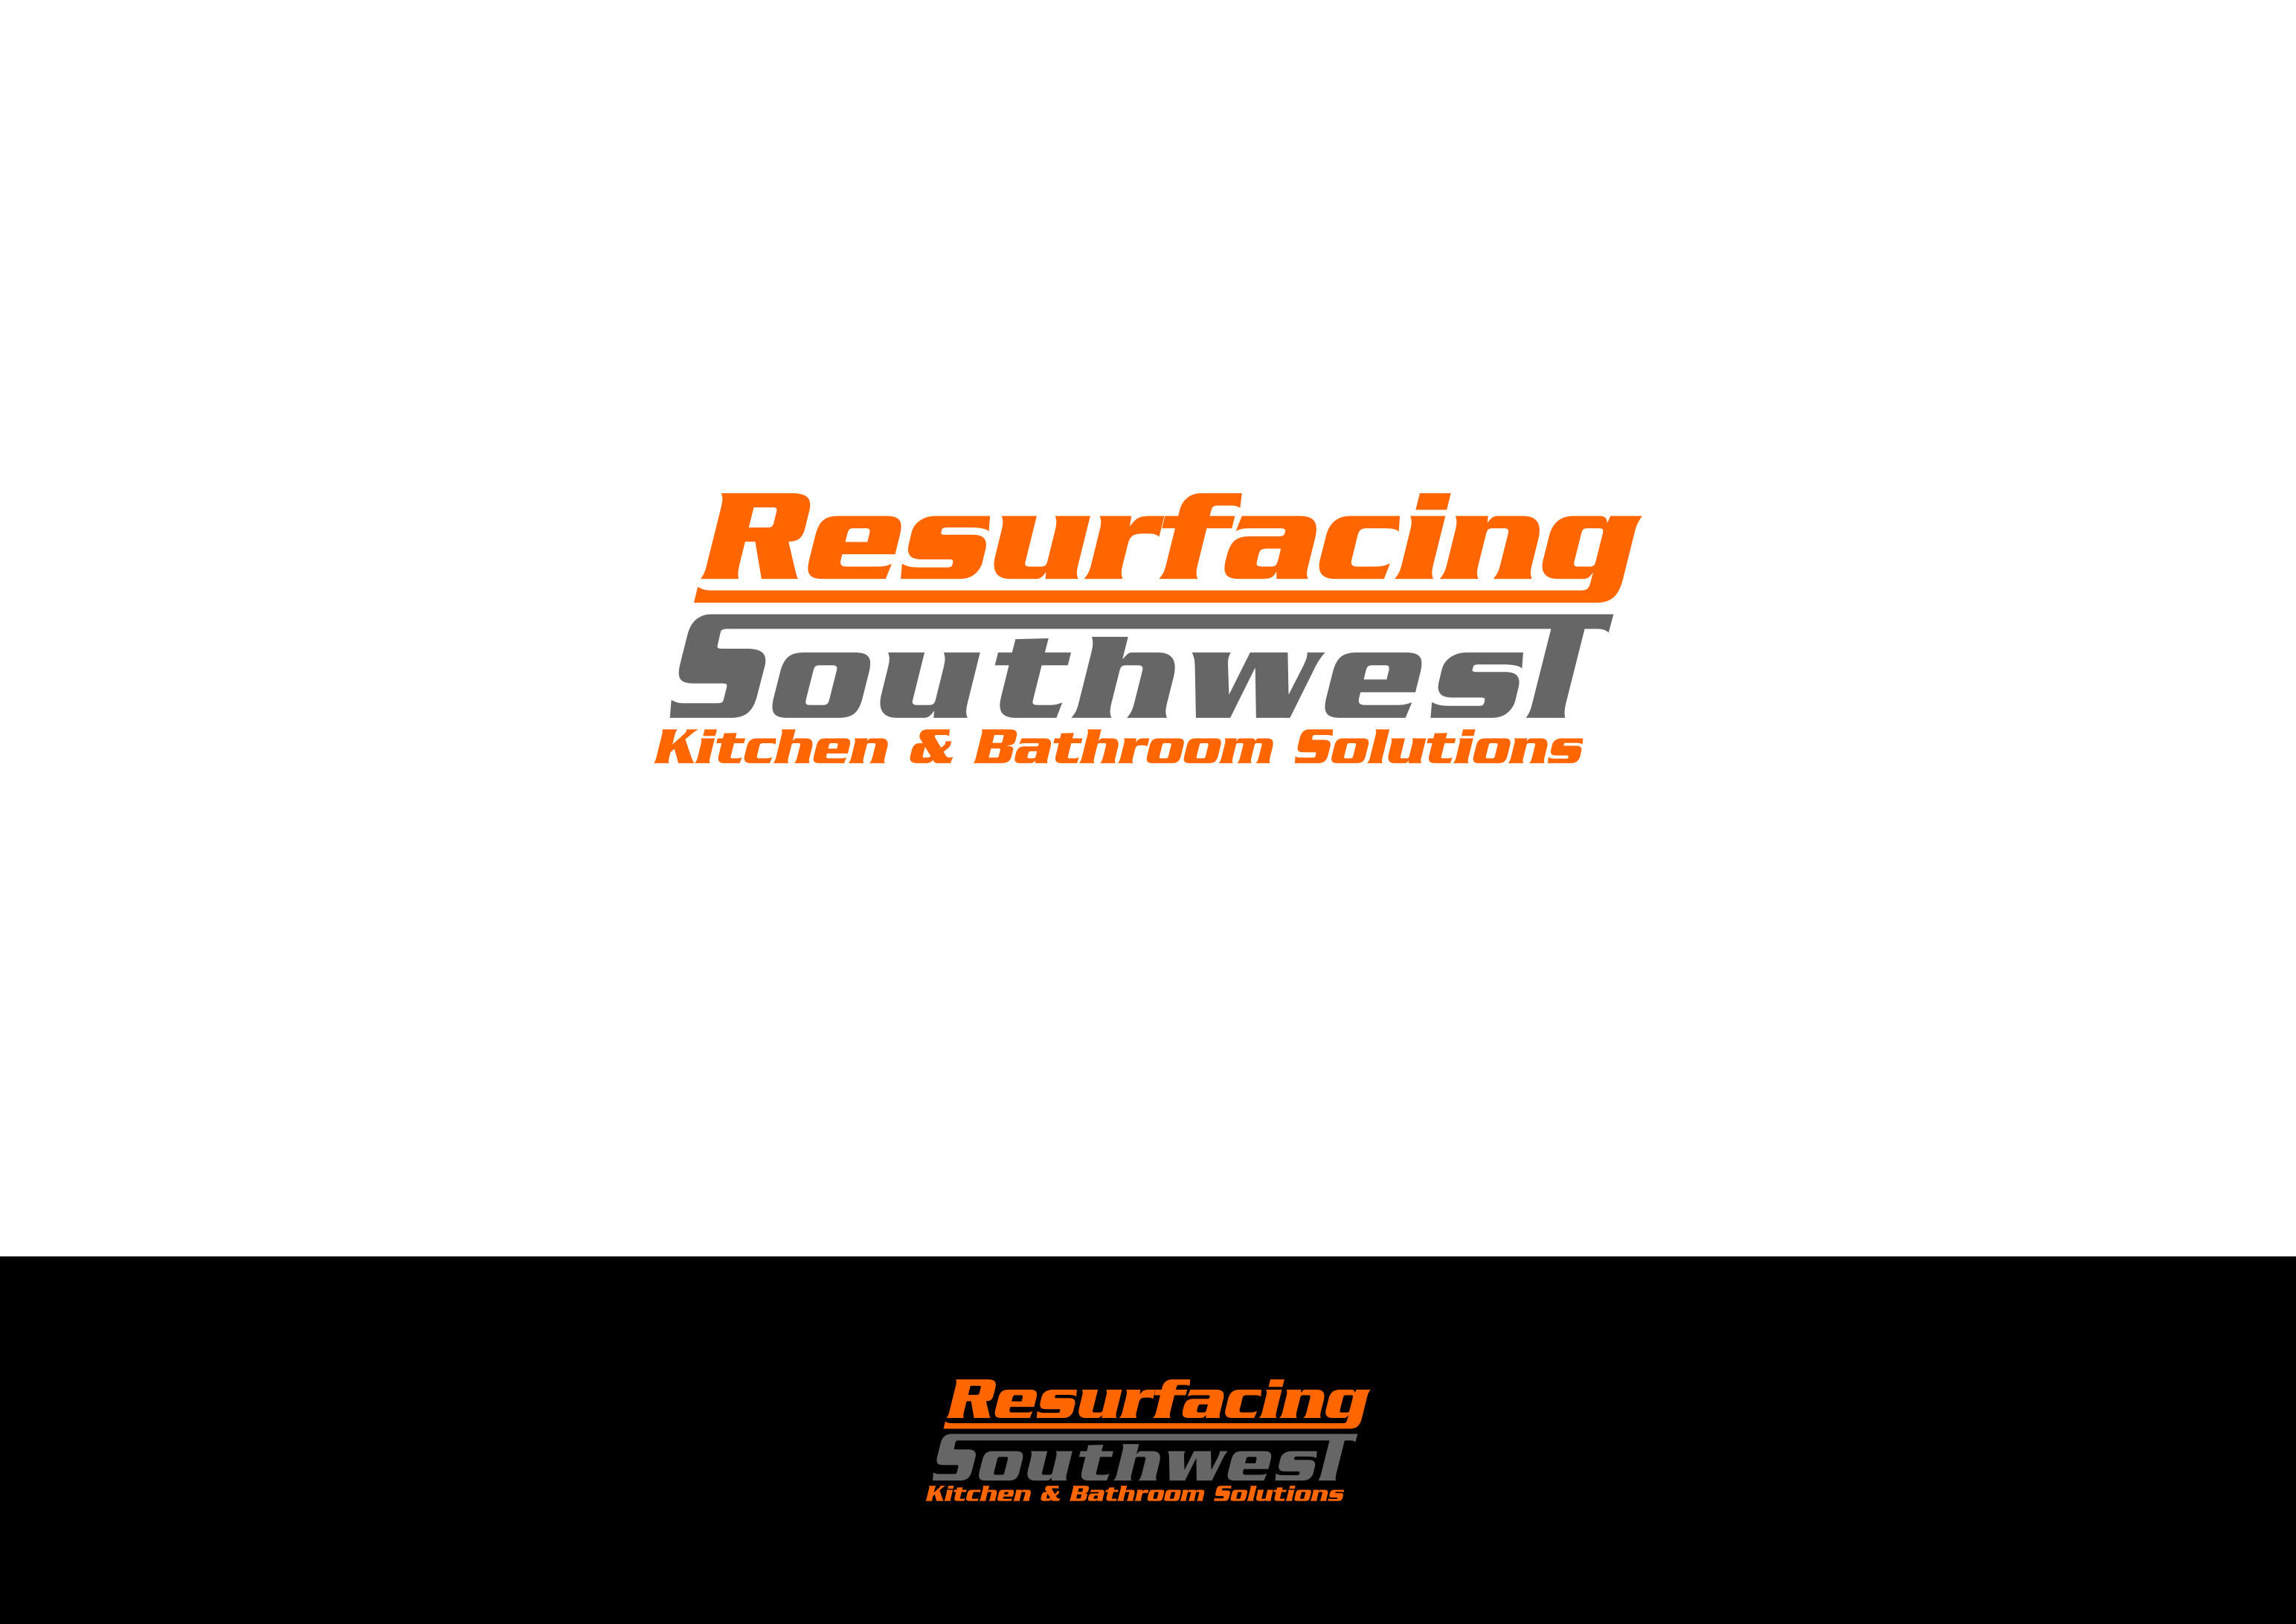 Design For Contest Kitchen And Bathroom Resurfacing Business Needs A Modern Logo